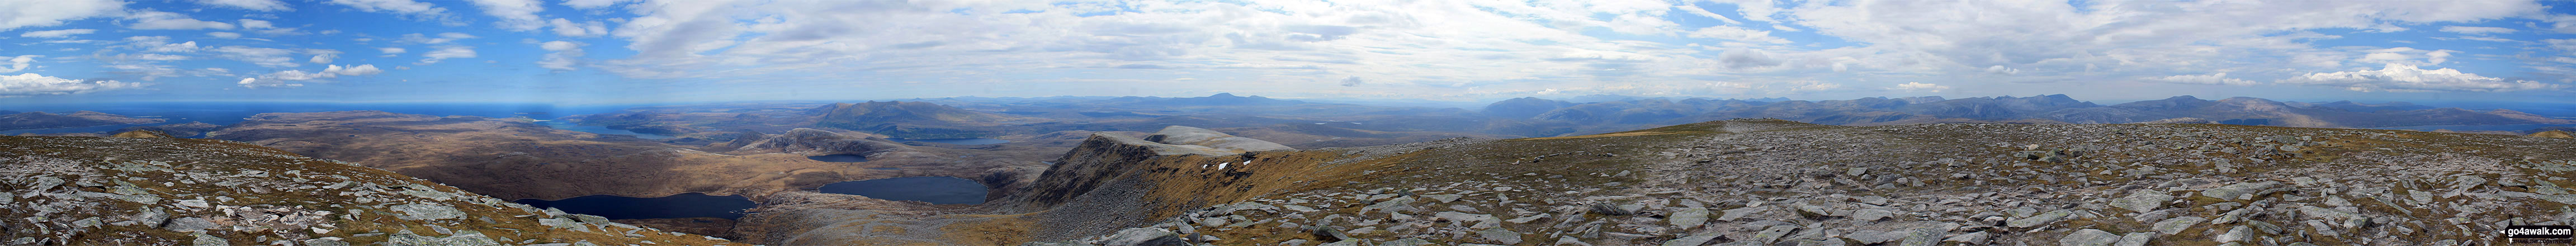 Walk h129 Ben Hope from Muiseal, Strath More - Panorama from the summit of Ben Hope